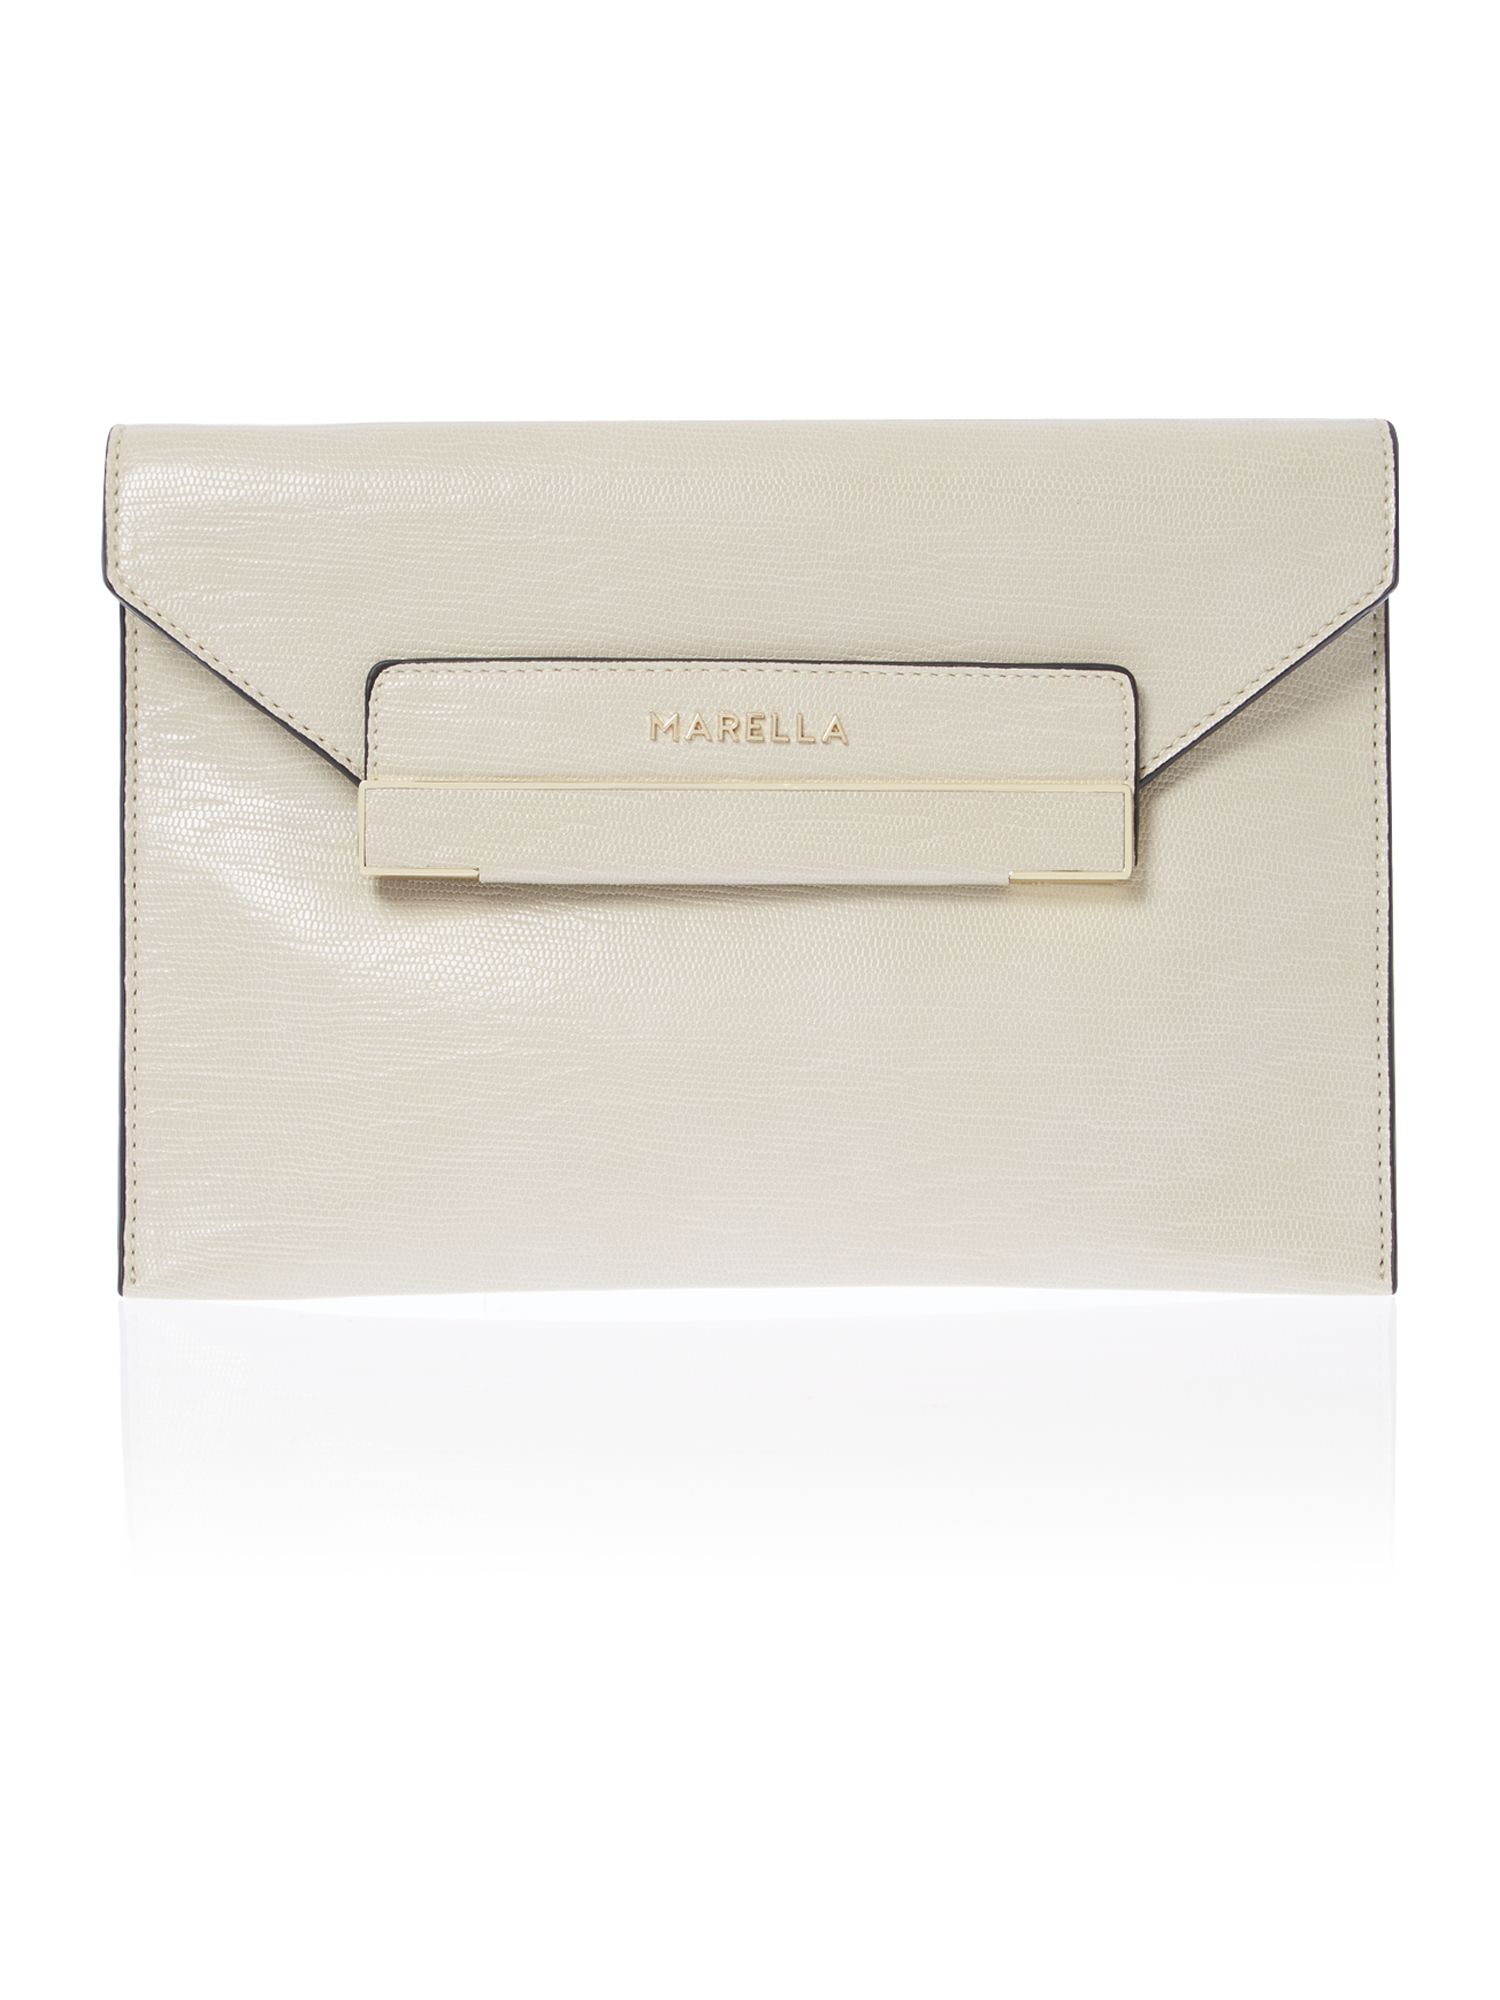 Neutral envelope clutch bag with chain strap